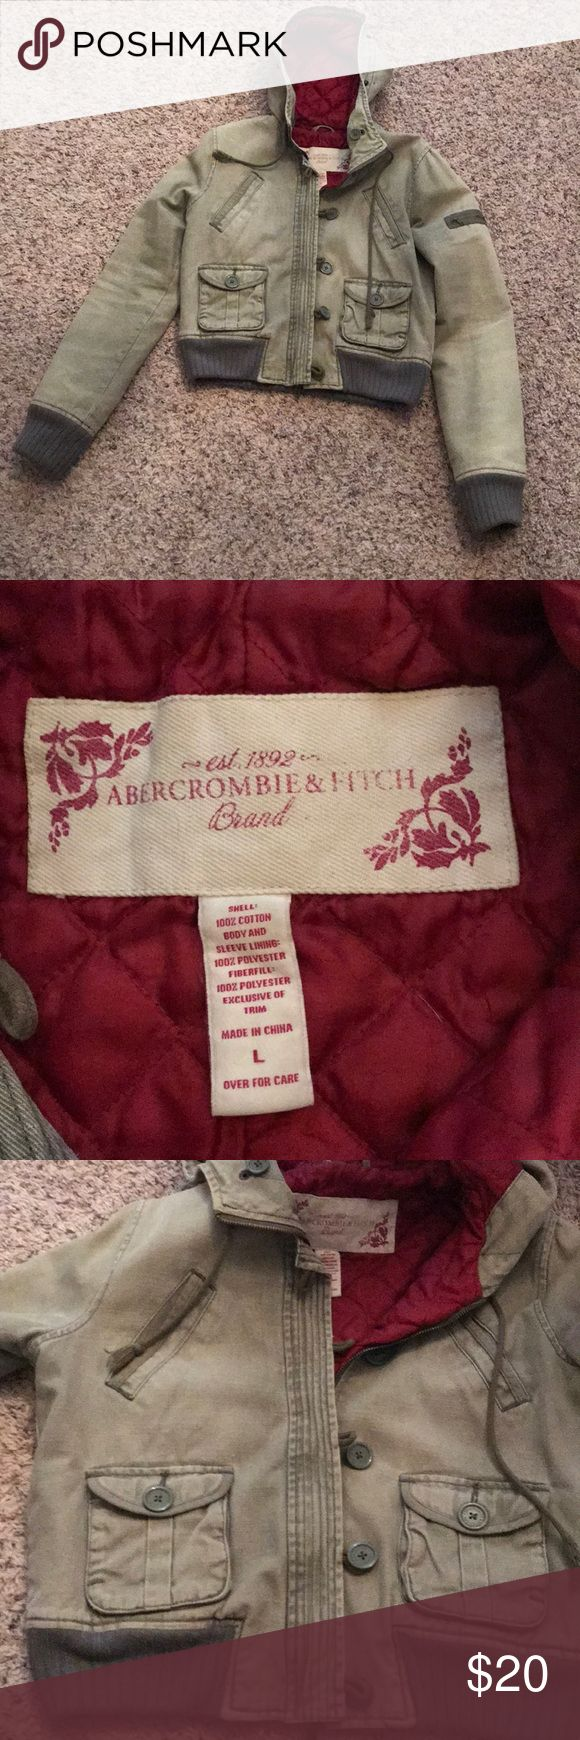 Abercrombie and Fitch jacket Army green Abercrombie and Fitch jacket. Lots of pockets and in great shape! Inside is lined with red fabric. Junior size L Abercrombie & Fitch Jackets & Coats